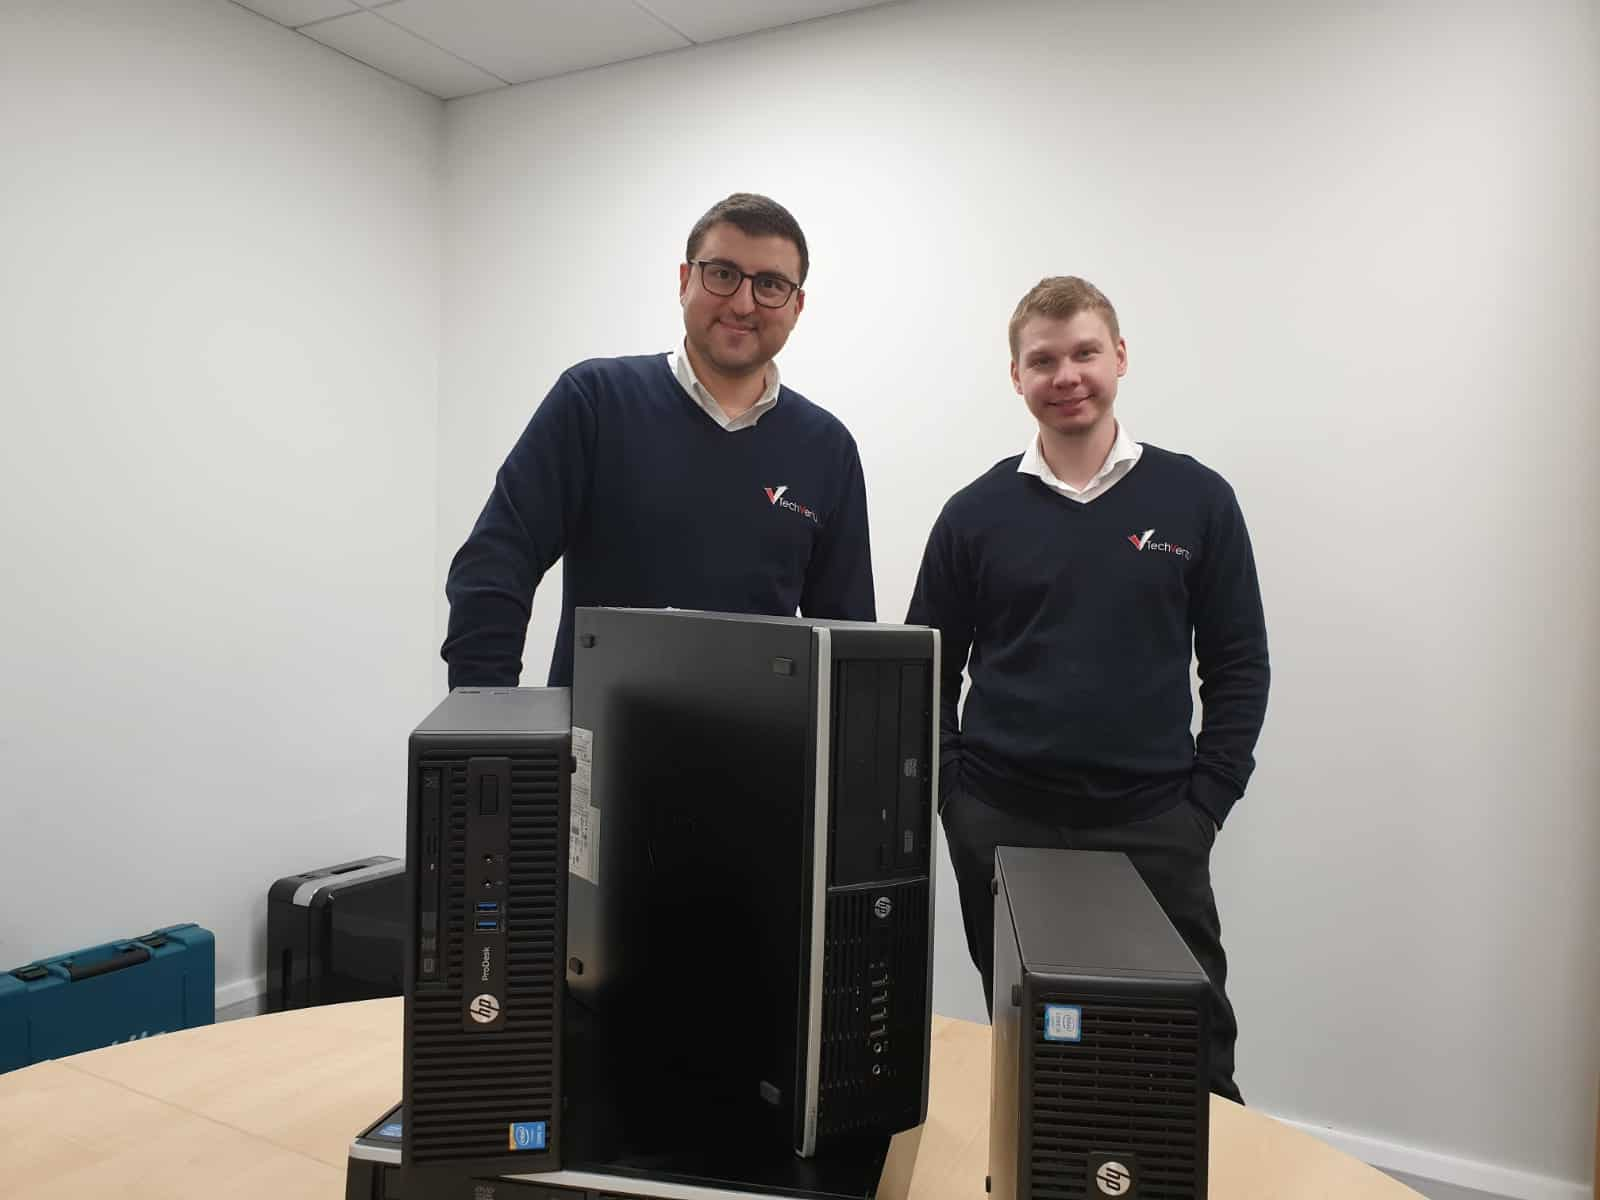 TechVertu donates 35 computers to local community